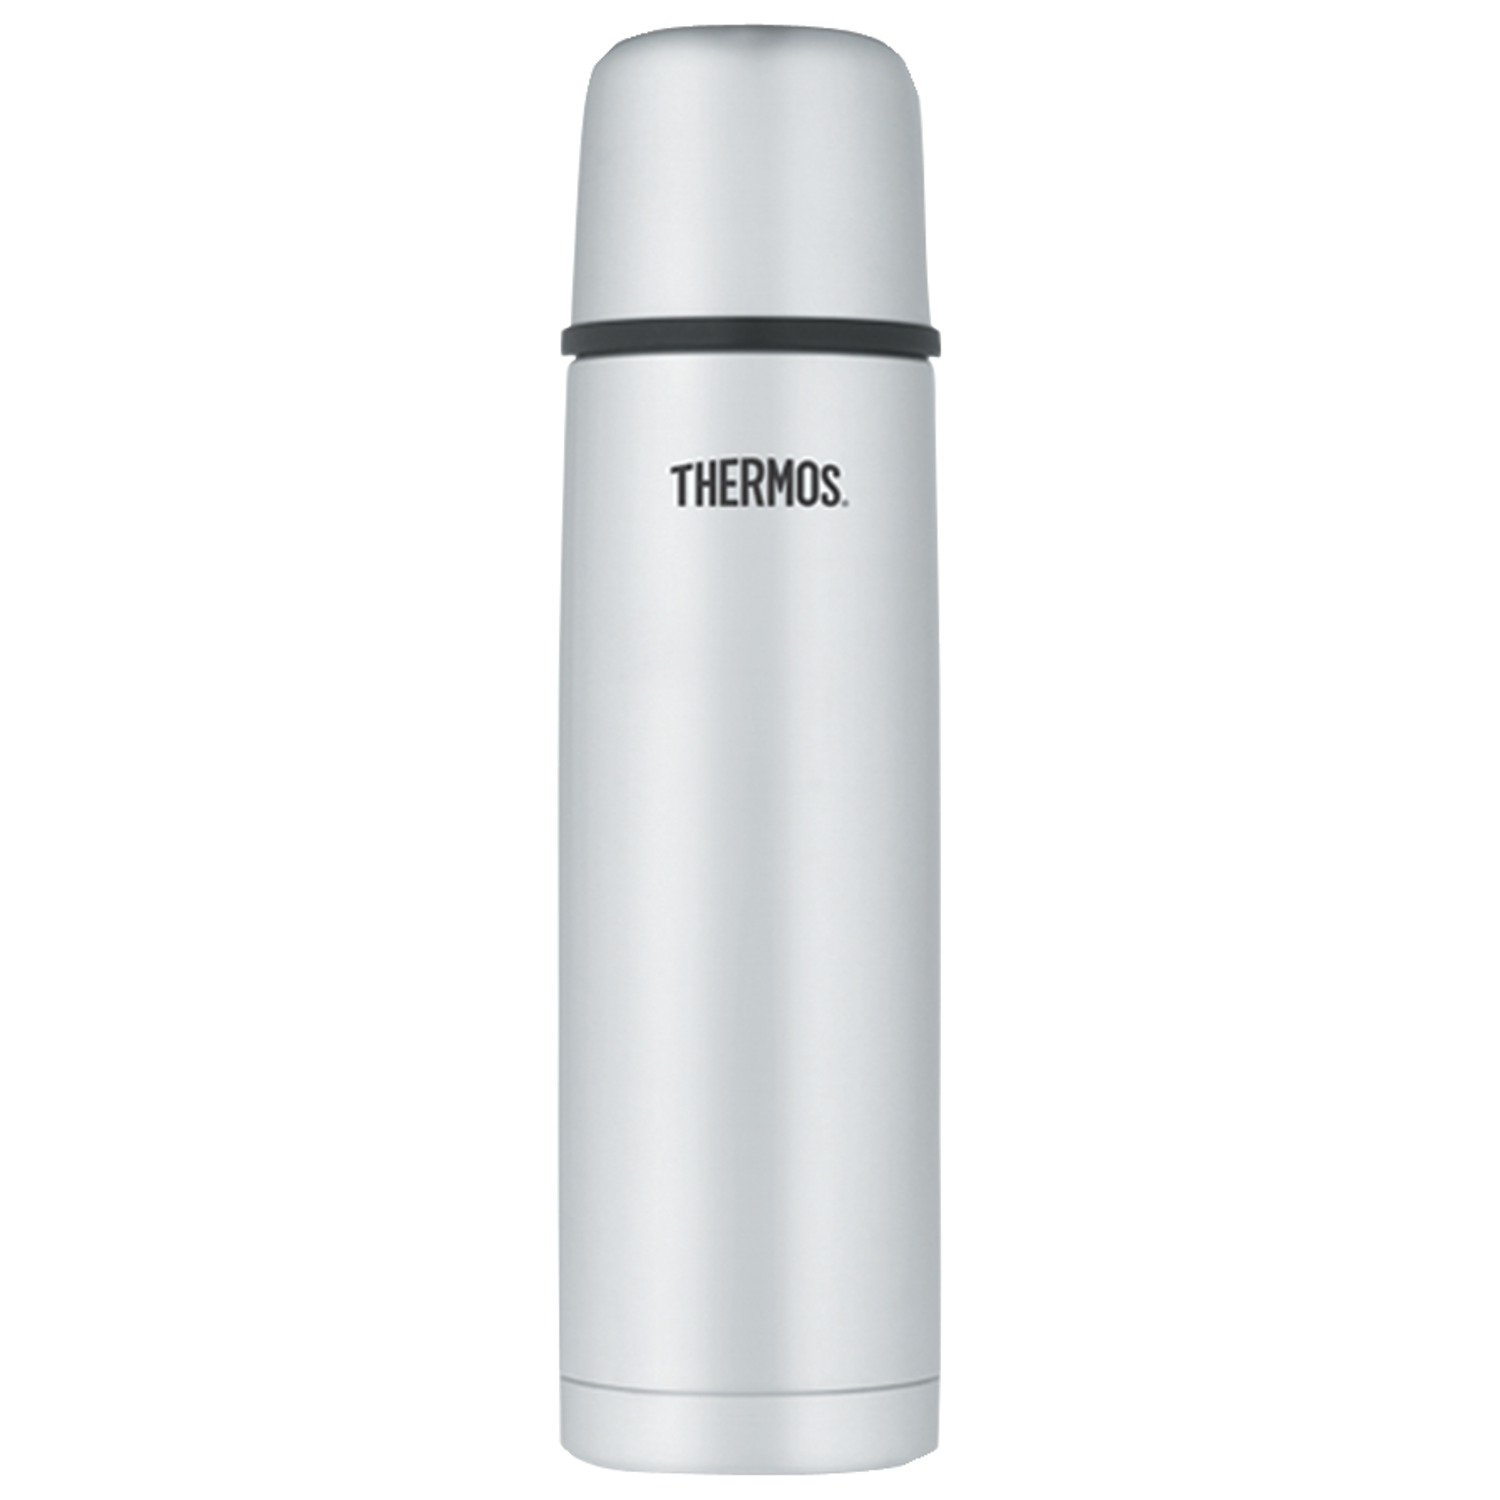 Stainless Steel Insulation : Thermos stainless steel vacuum insulated compact beverage